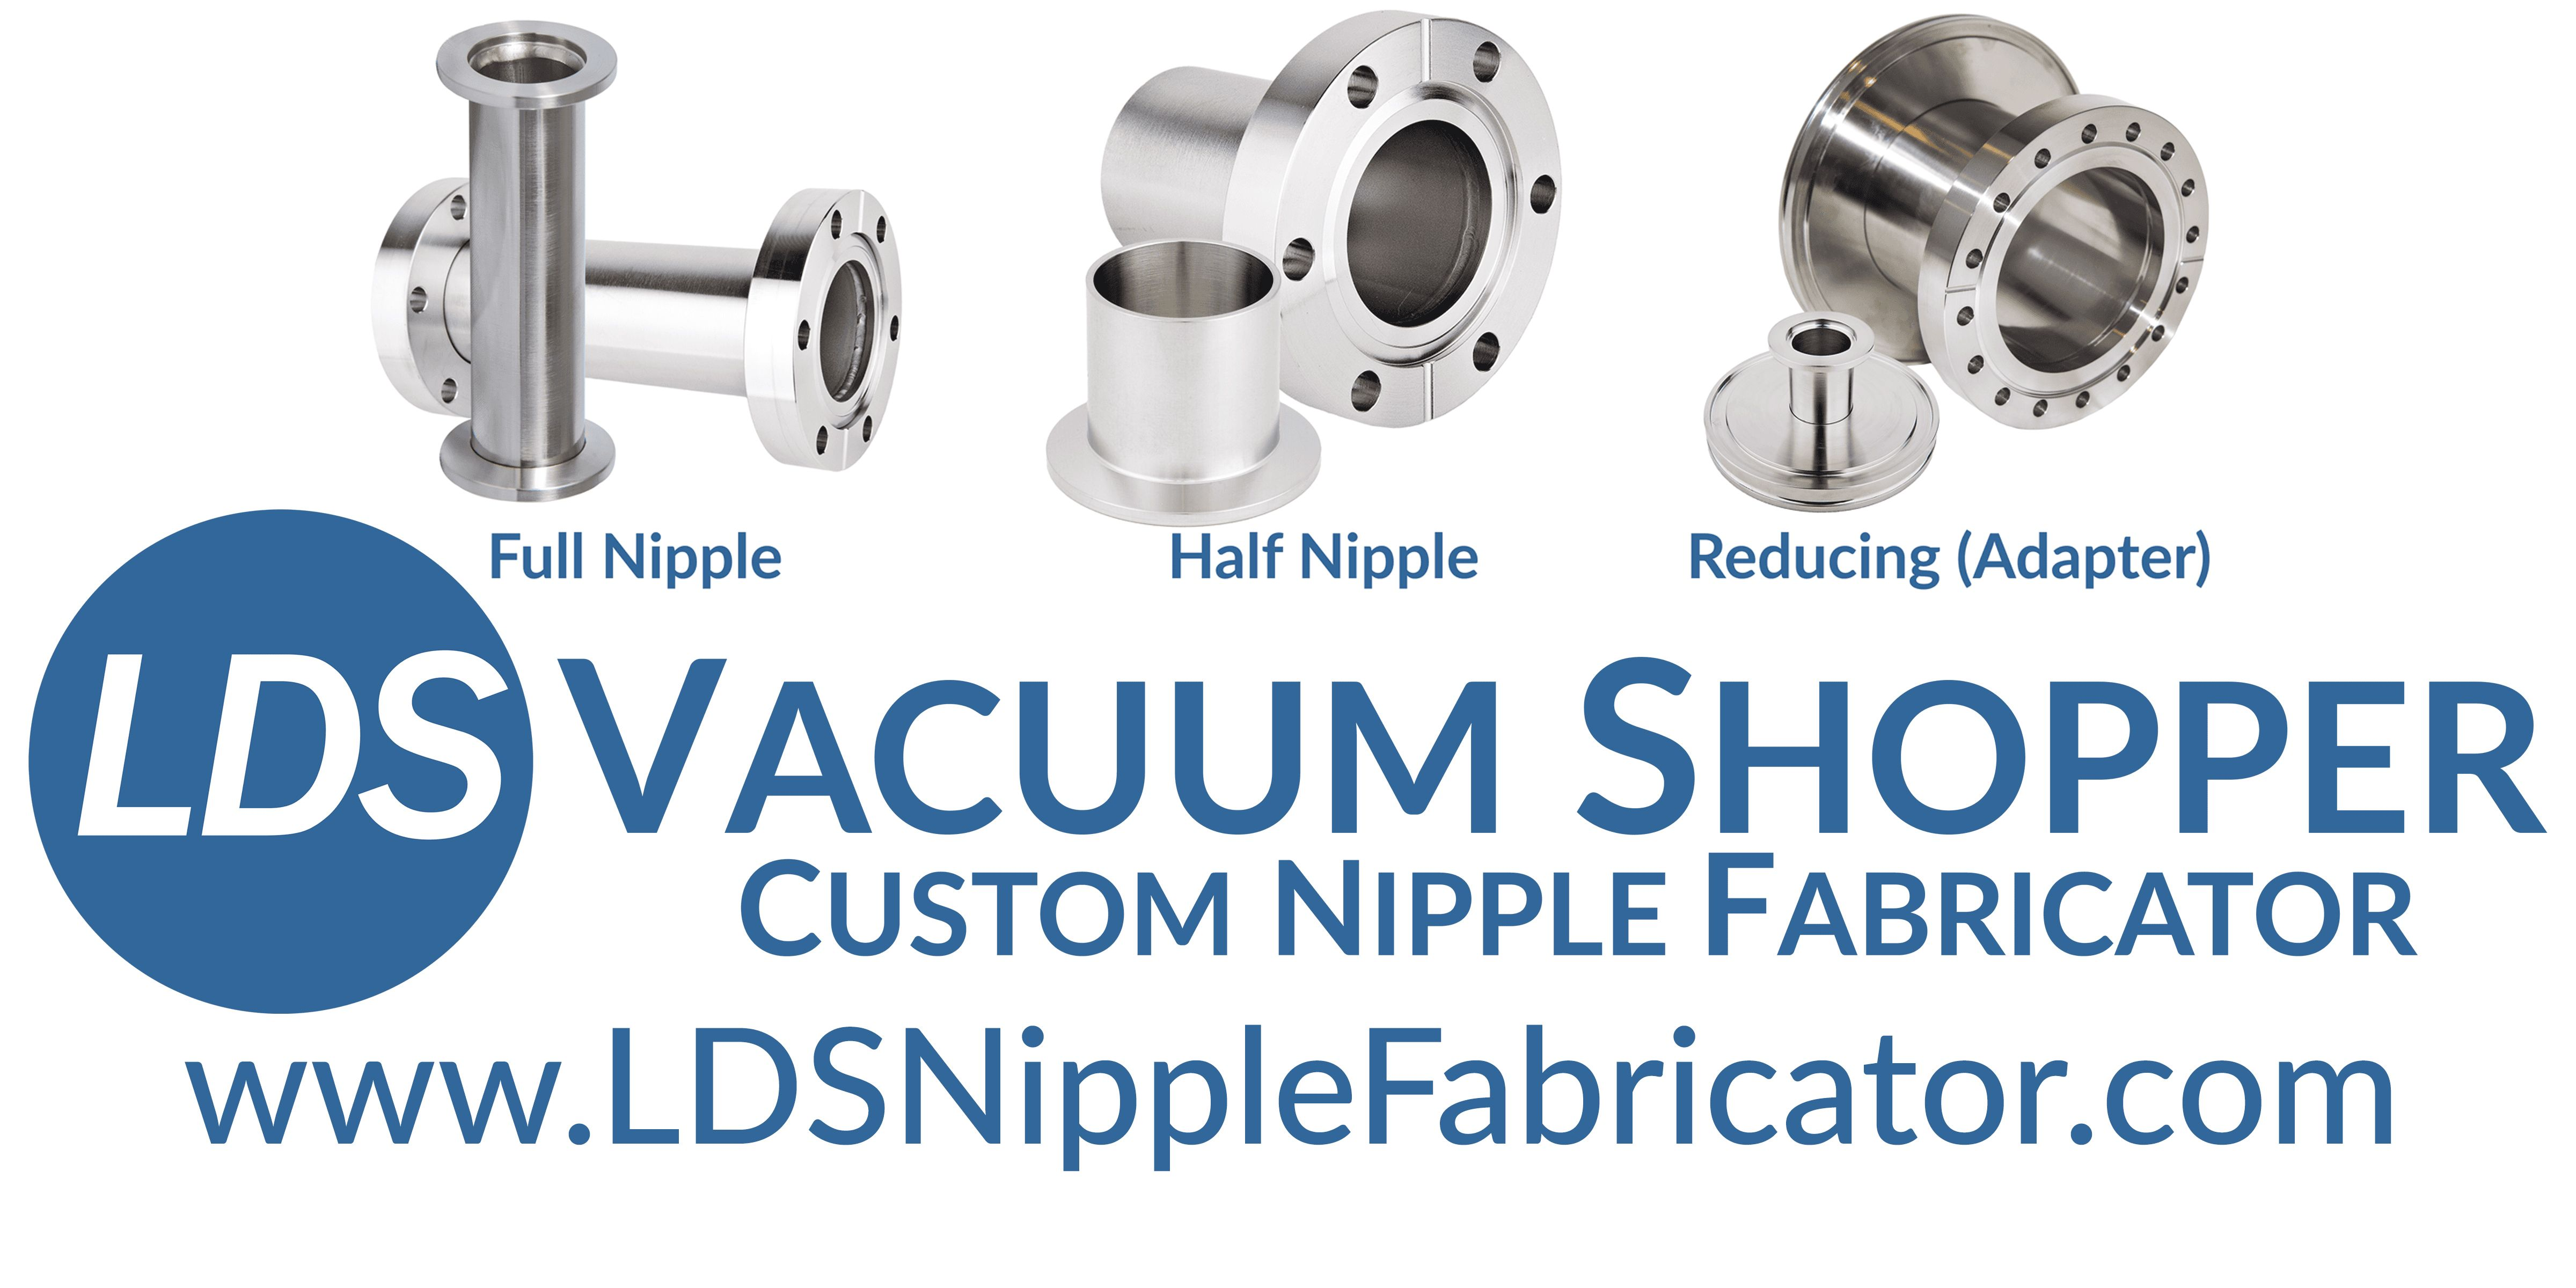 LDS Custom Nipple Fabricator